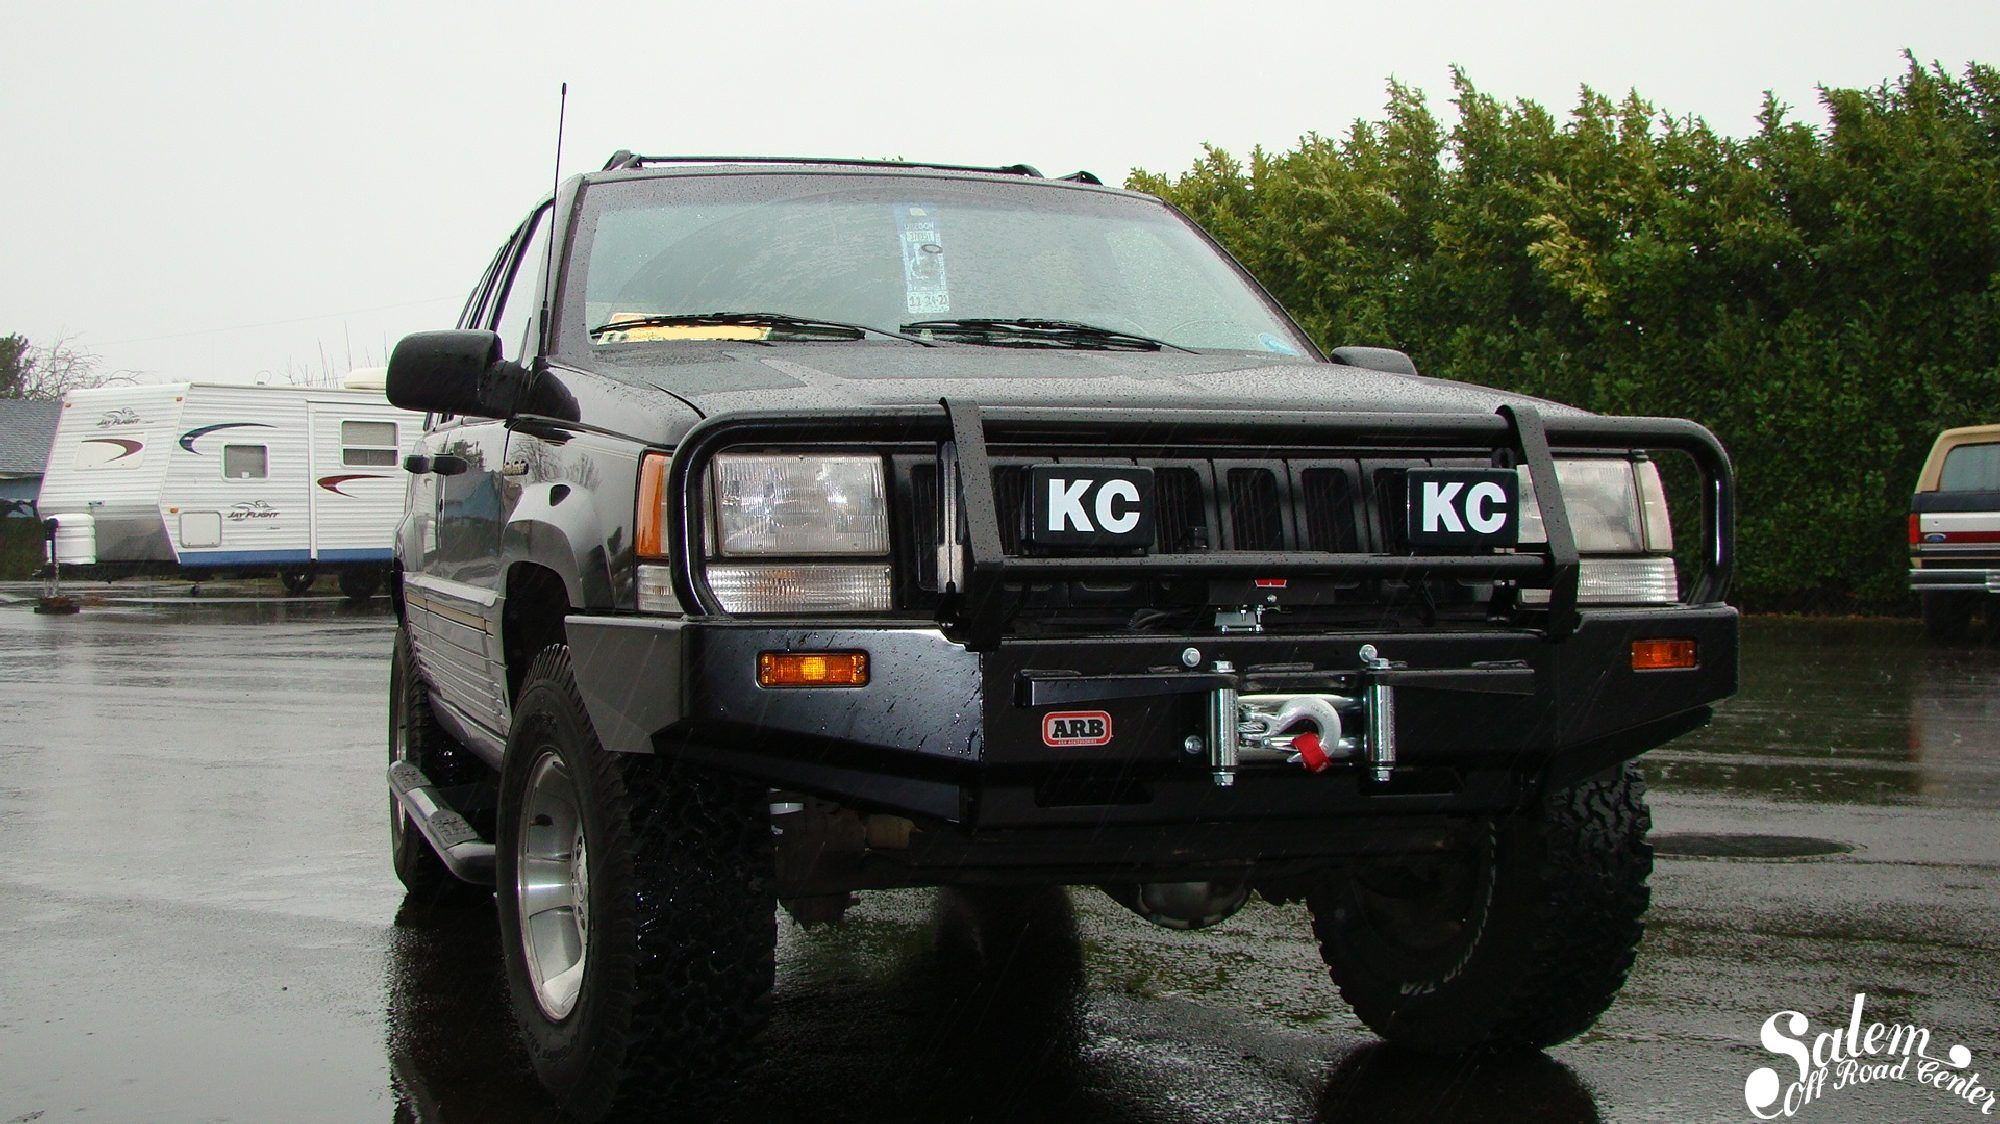 medium resolution of on this jeep zj we installed a arb bumper warn vr8000 winch and kc hilites 57 series lights